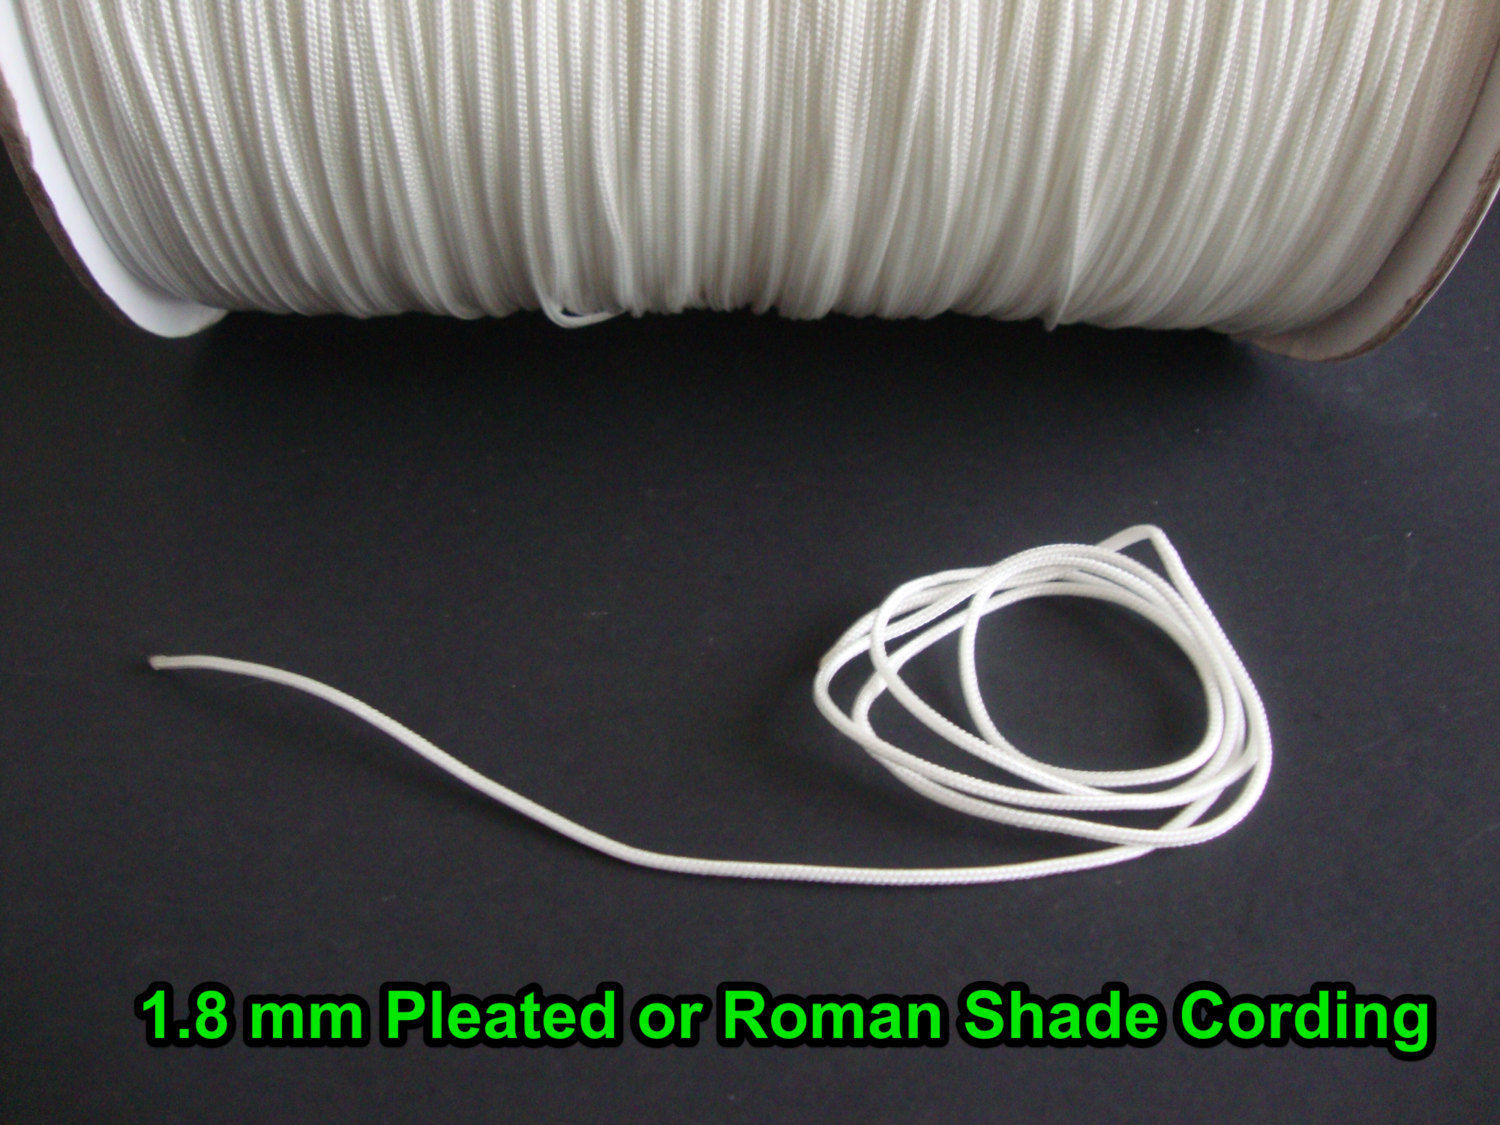 All-in-One ROMAN SHADE HARDWARE kit, in White (cord lock, pulleys, cord, bracket